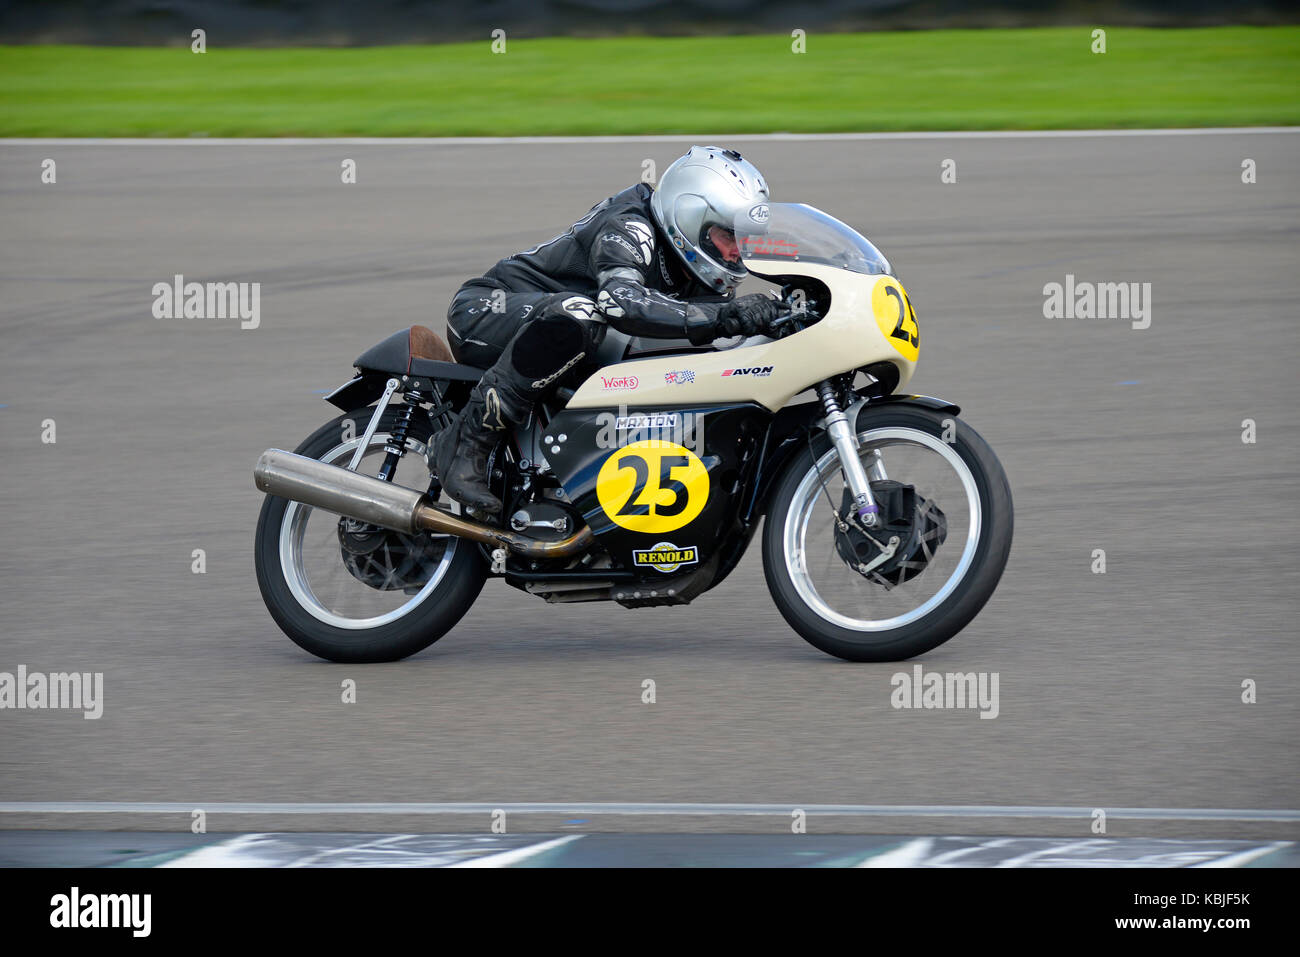 1960 Norton Manx 500 owned by Elaine Farrall racing at Goodwood Revival 2017. Space for copy - Stock Image